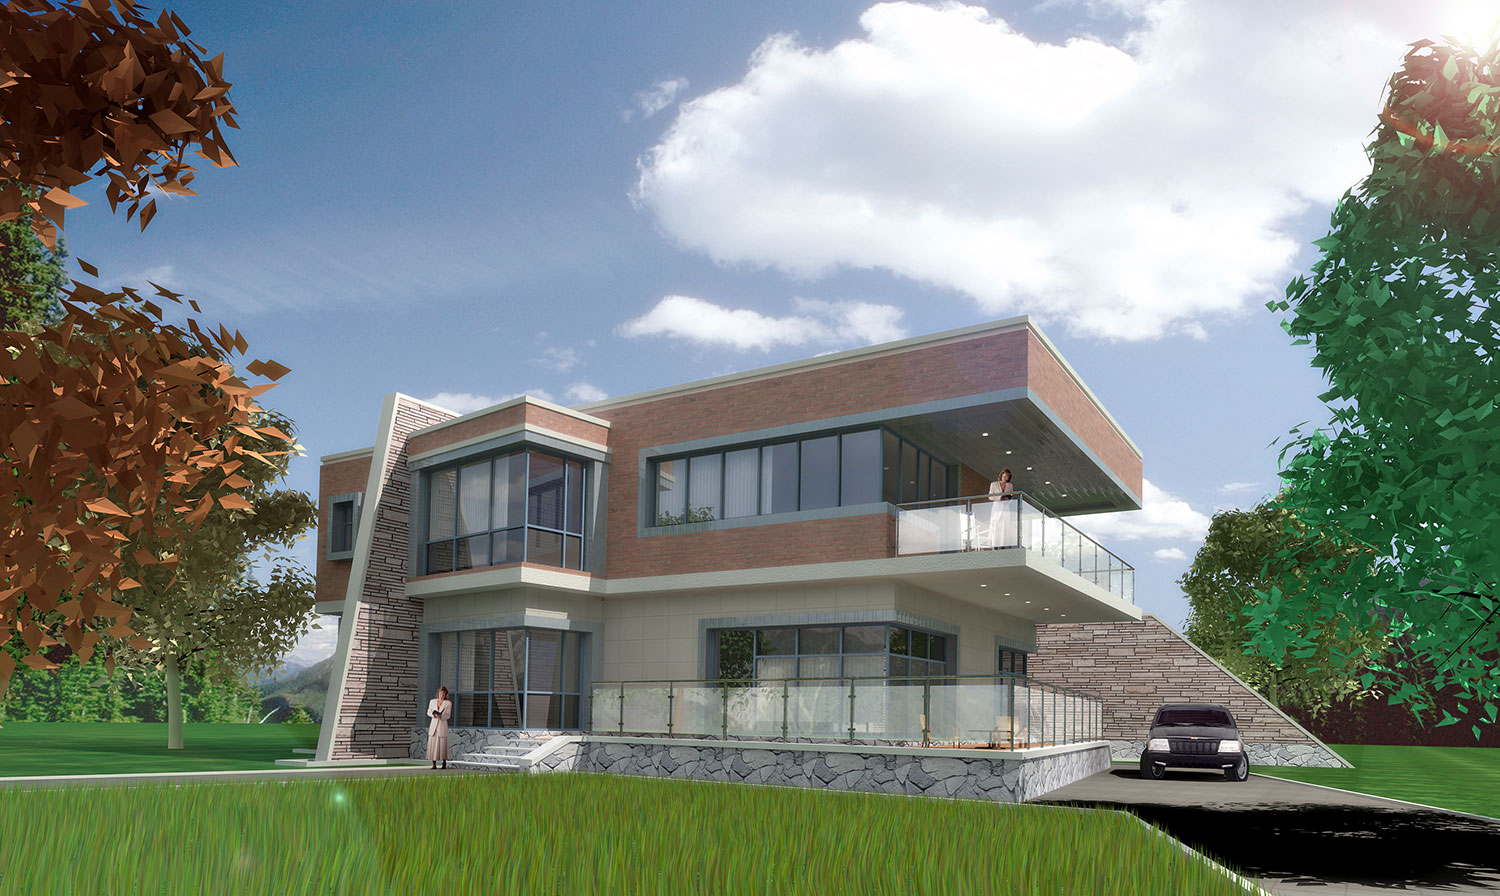 02. INDIVIDUAL RESIDENTIAL HOUSE